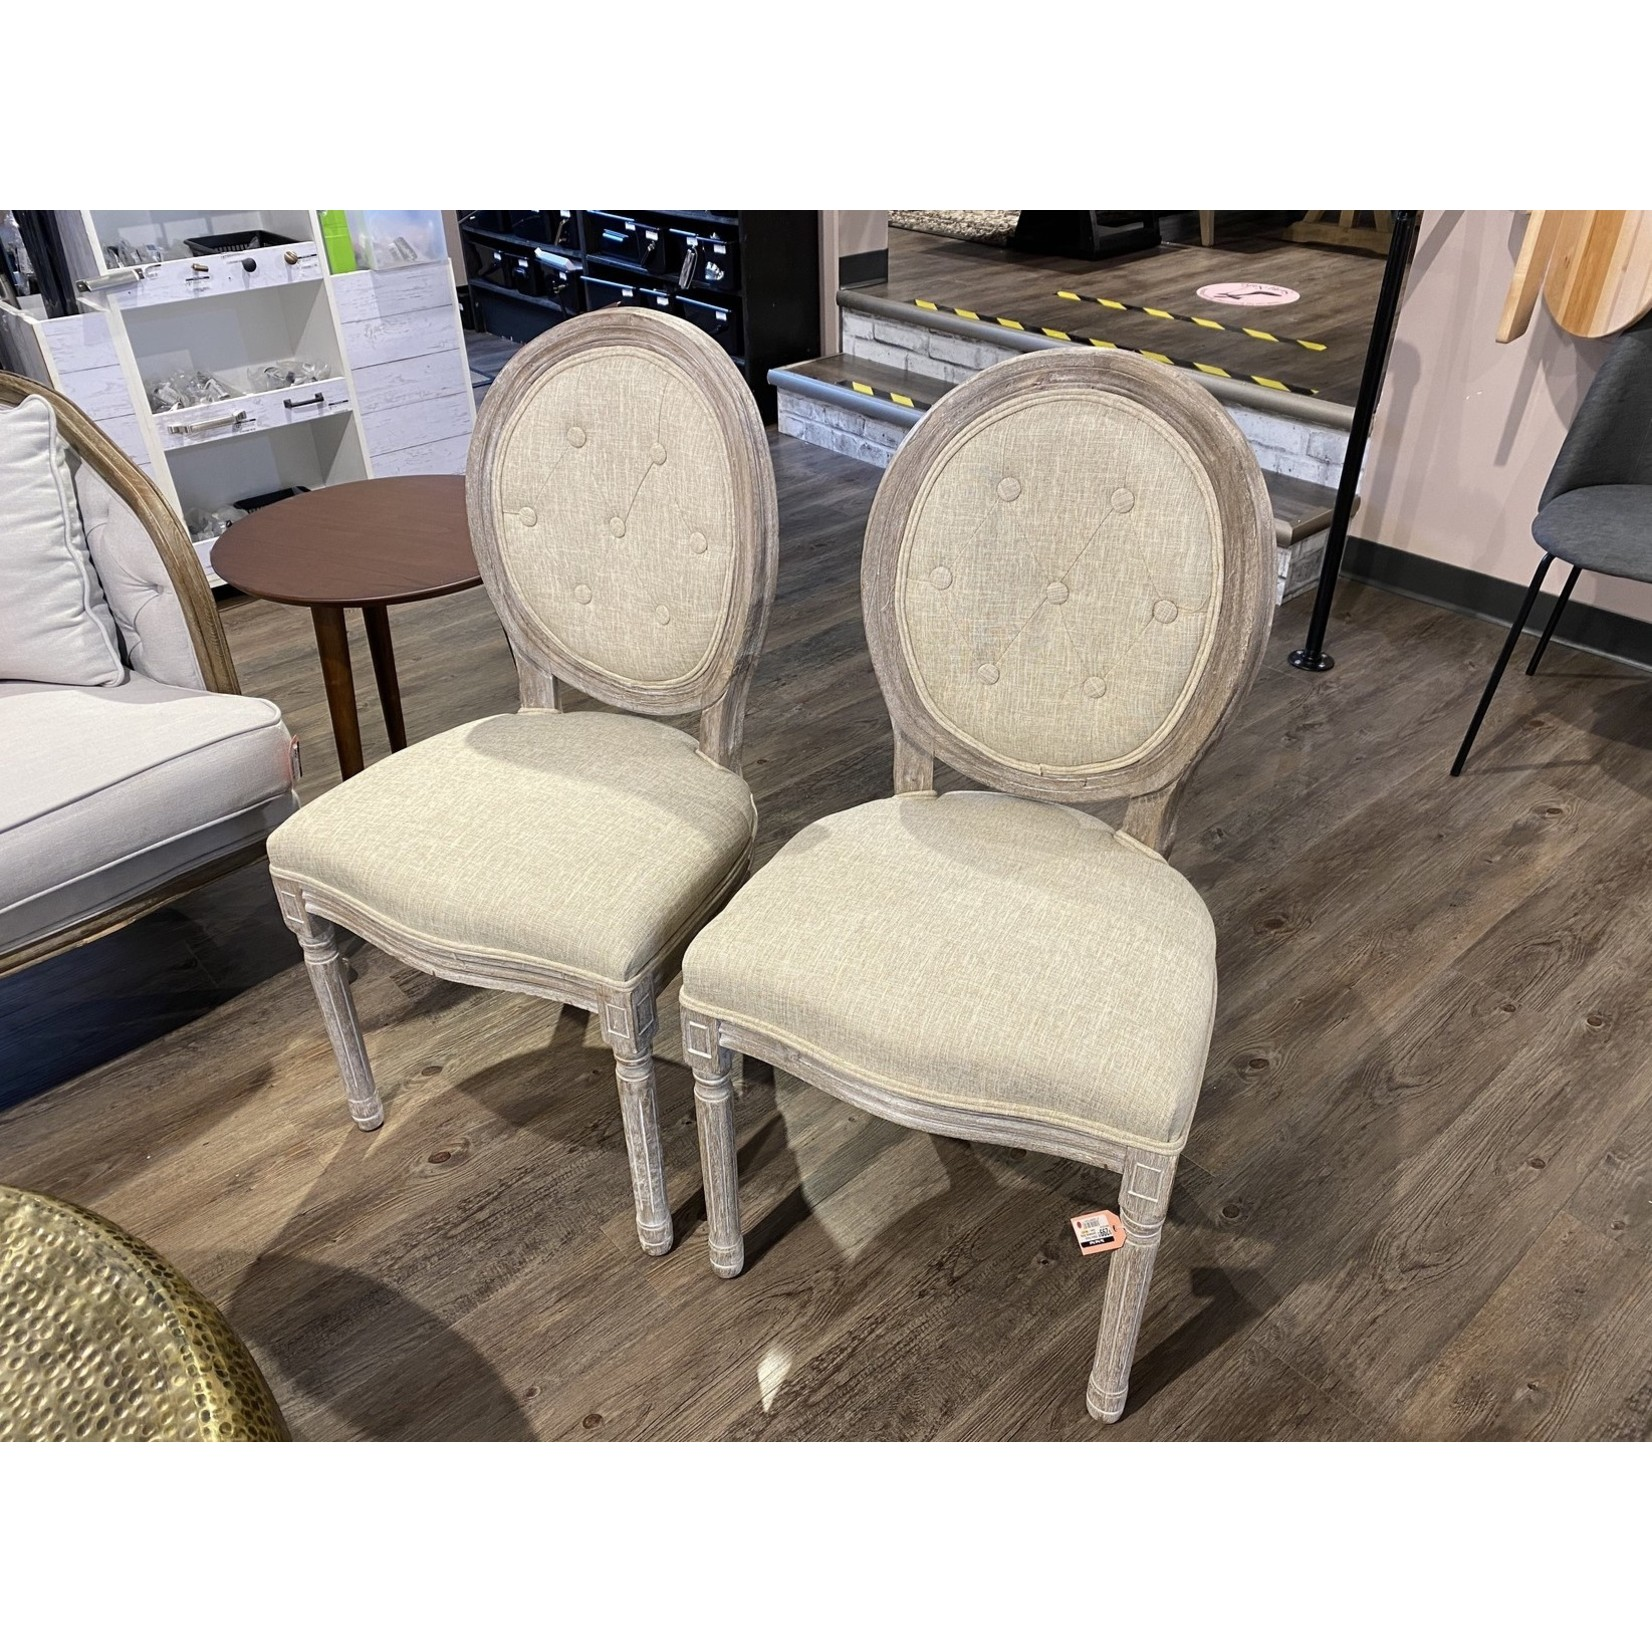 Vibbert French Upholstered Dining Chair - Set of 2